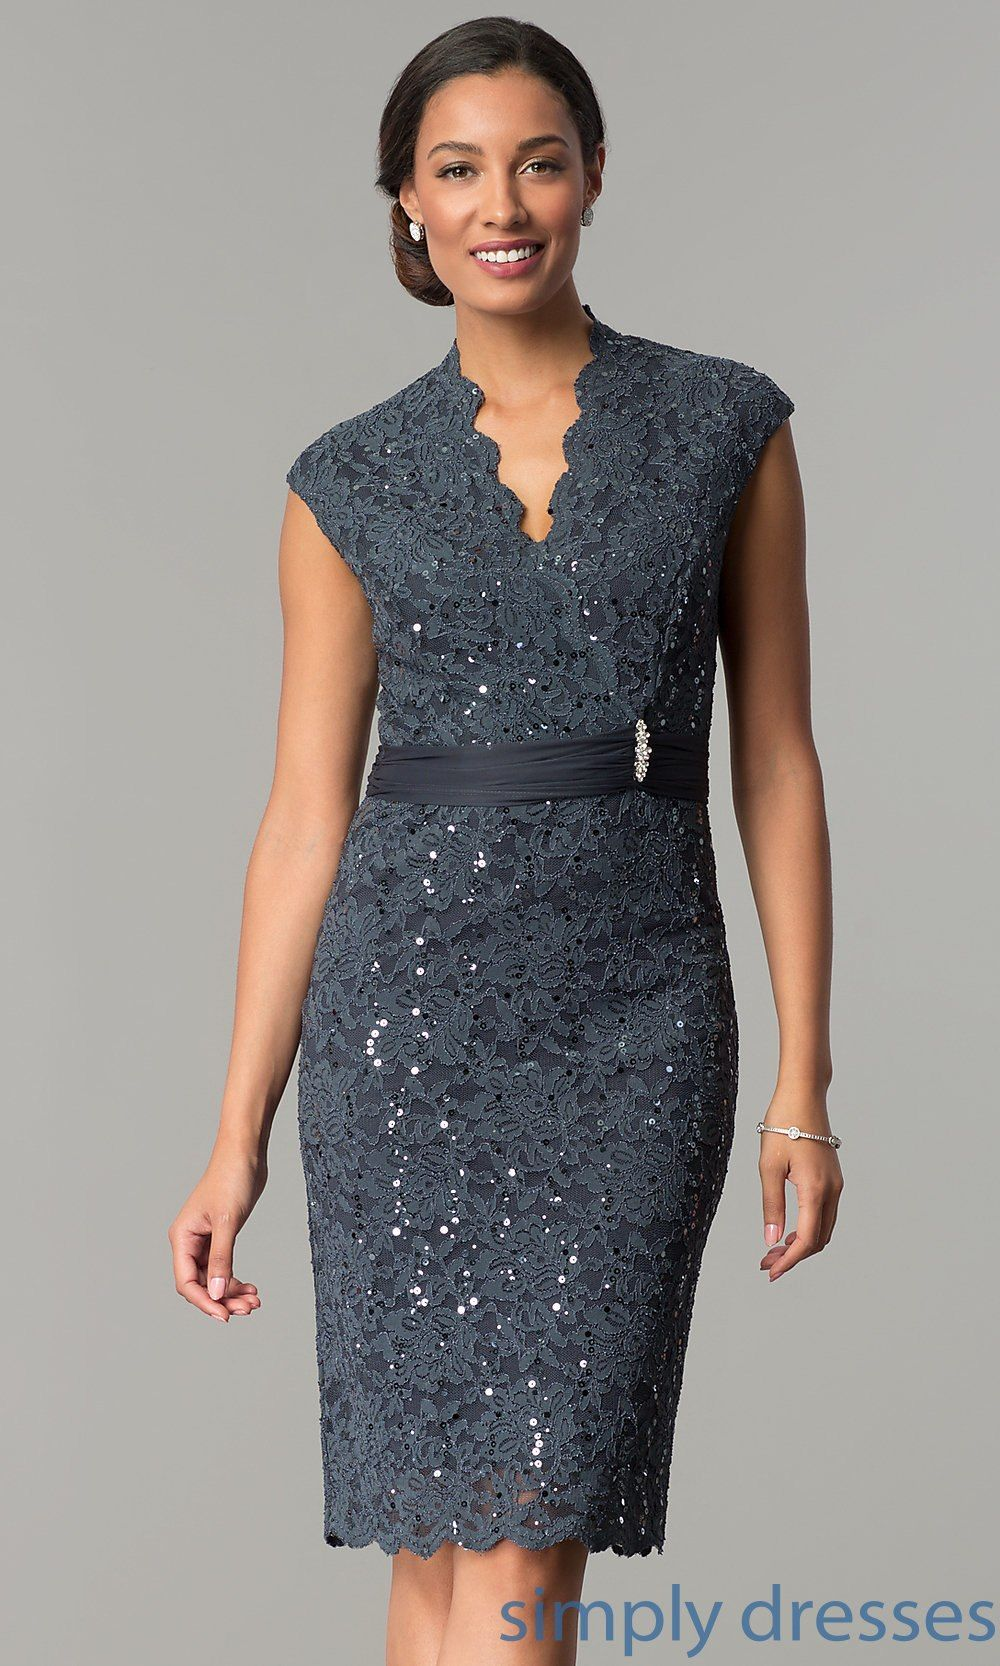 Shop sequin-lace short wedding-guest dresses under  100 at Simply Dresses.  Semi-formal knee-length v-neck party dresses with removable brooches. f972b14f5